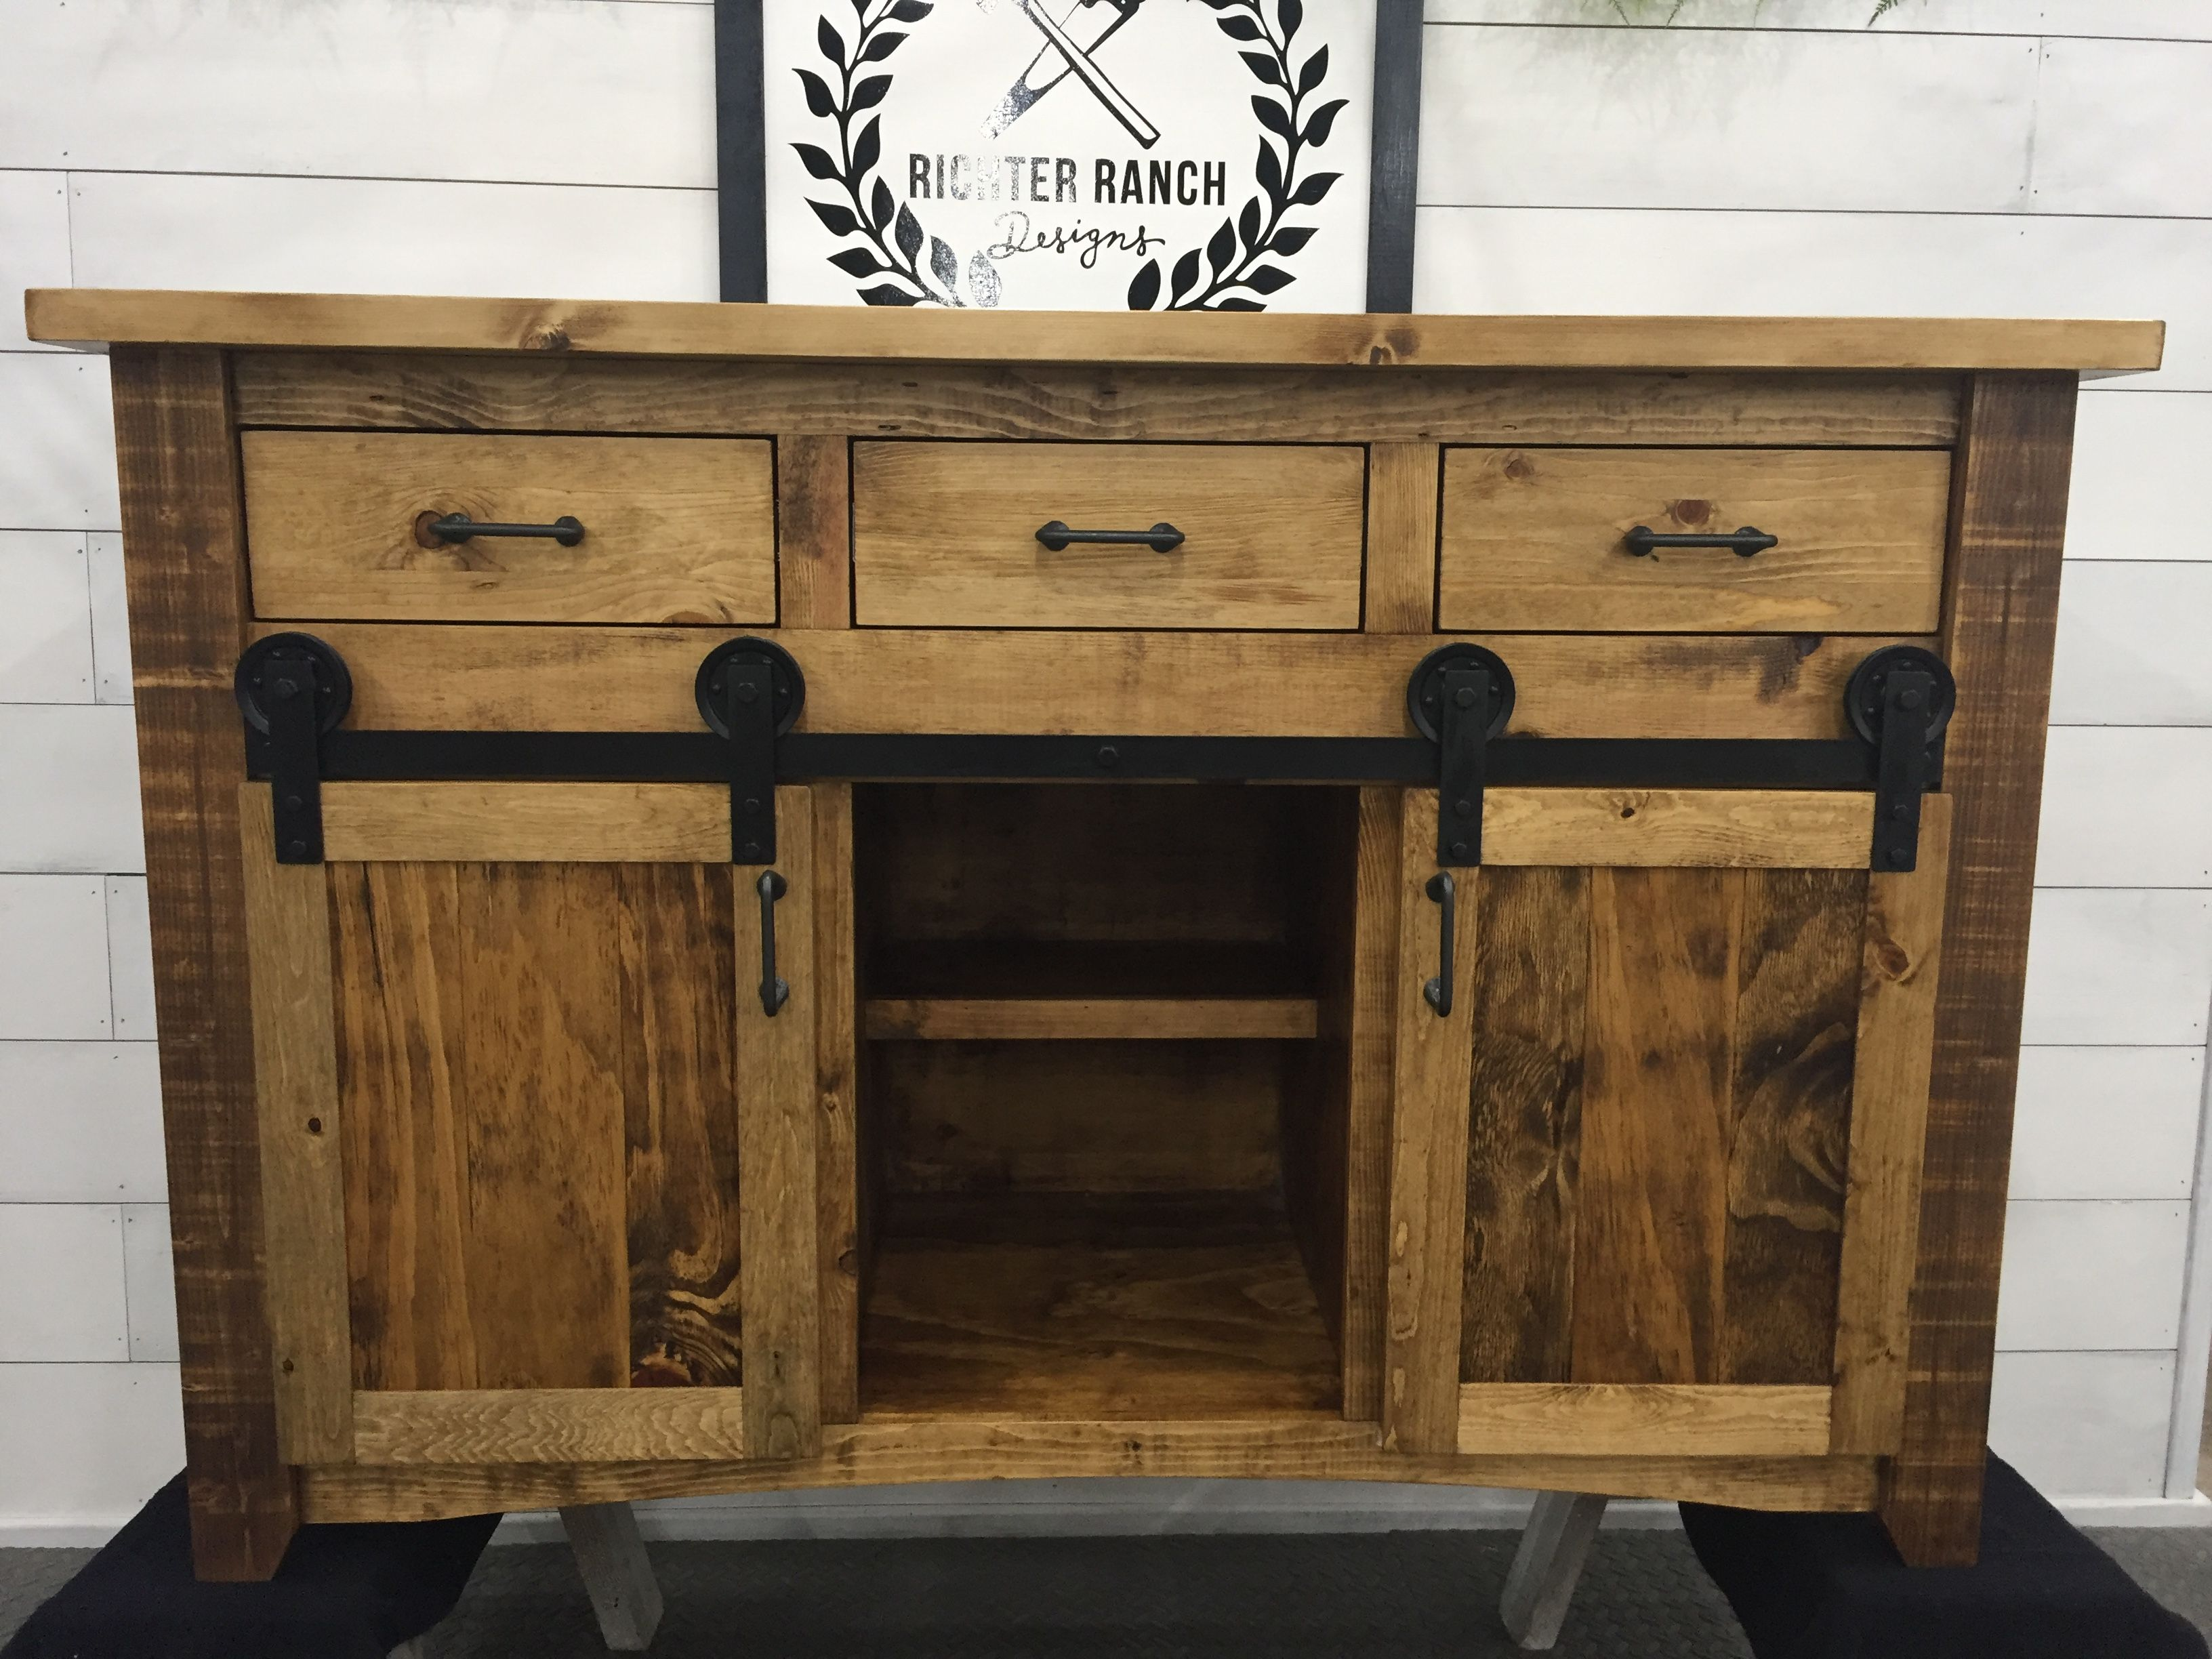 hand crafted rustic kitchen islandrichter ranch designs | custommade